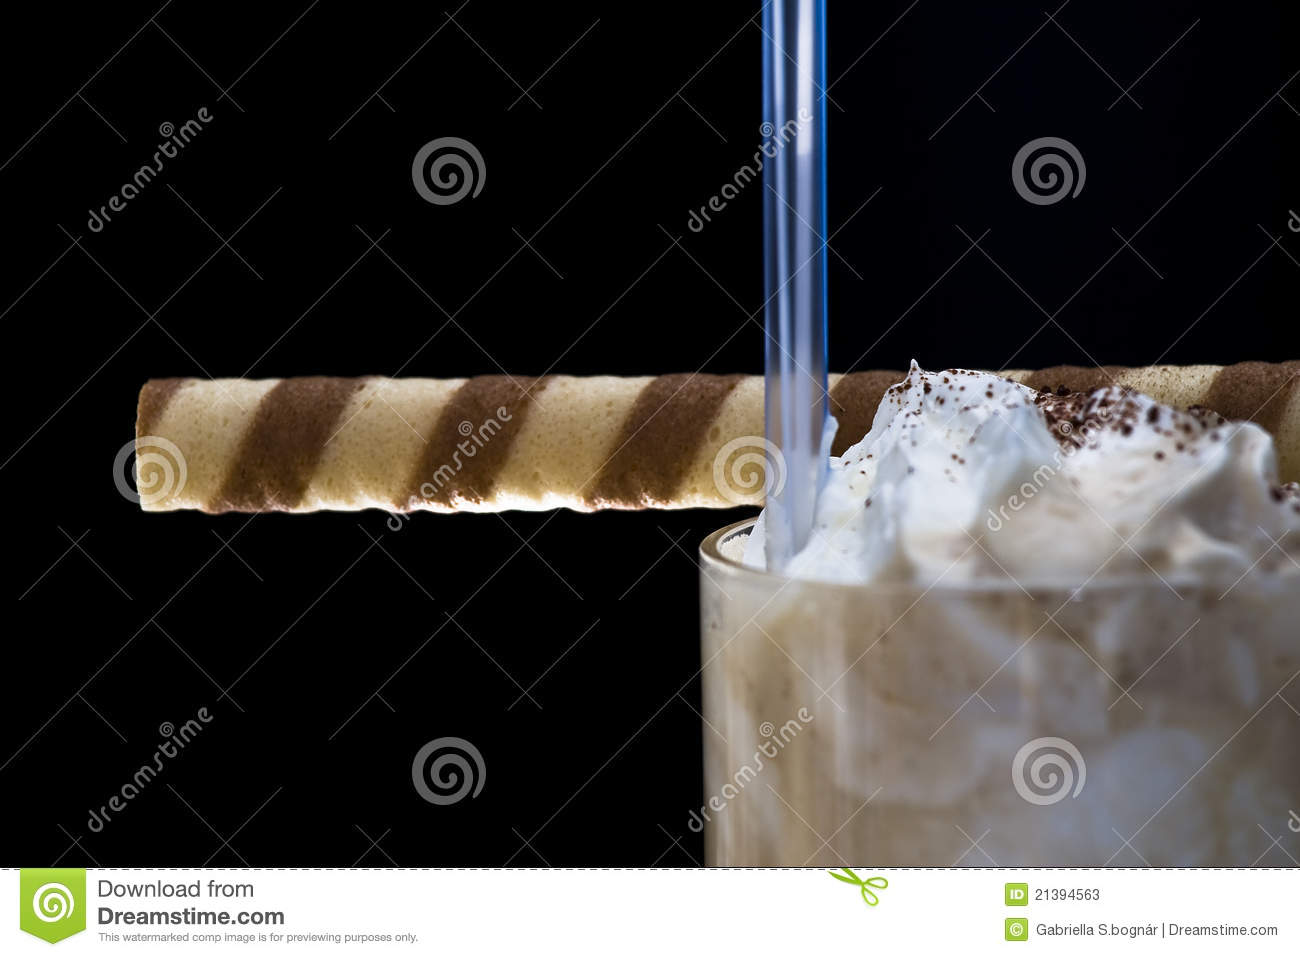 Coffe latte whit whipped cream and tasty roll